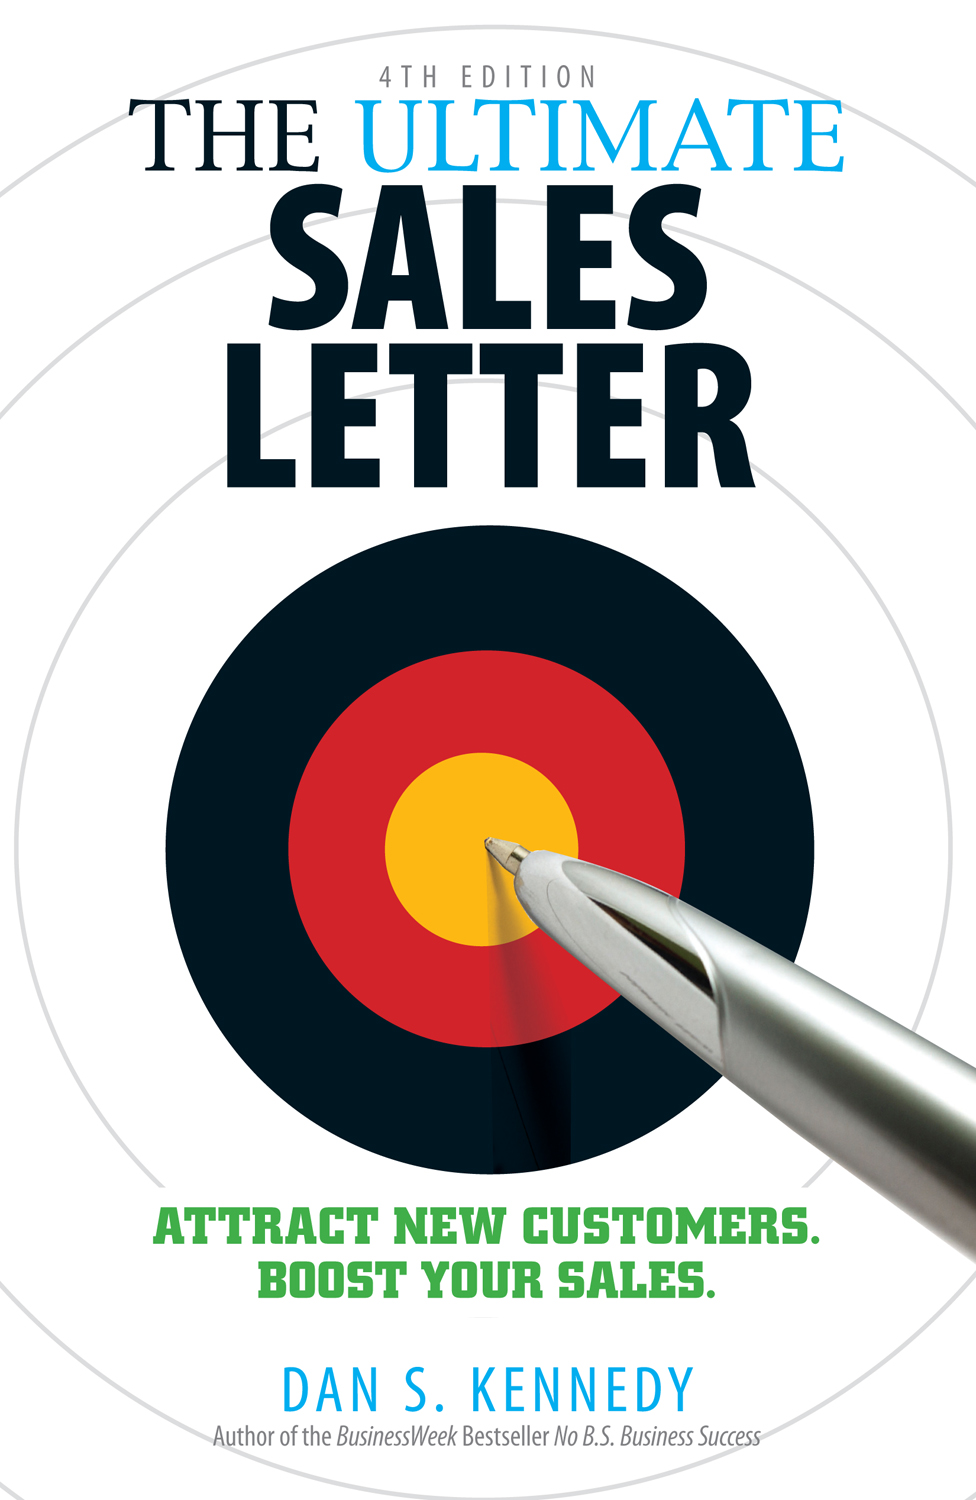 The Ultimate Sales Letter Attract New Customers. Boost your Sales.